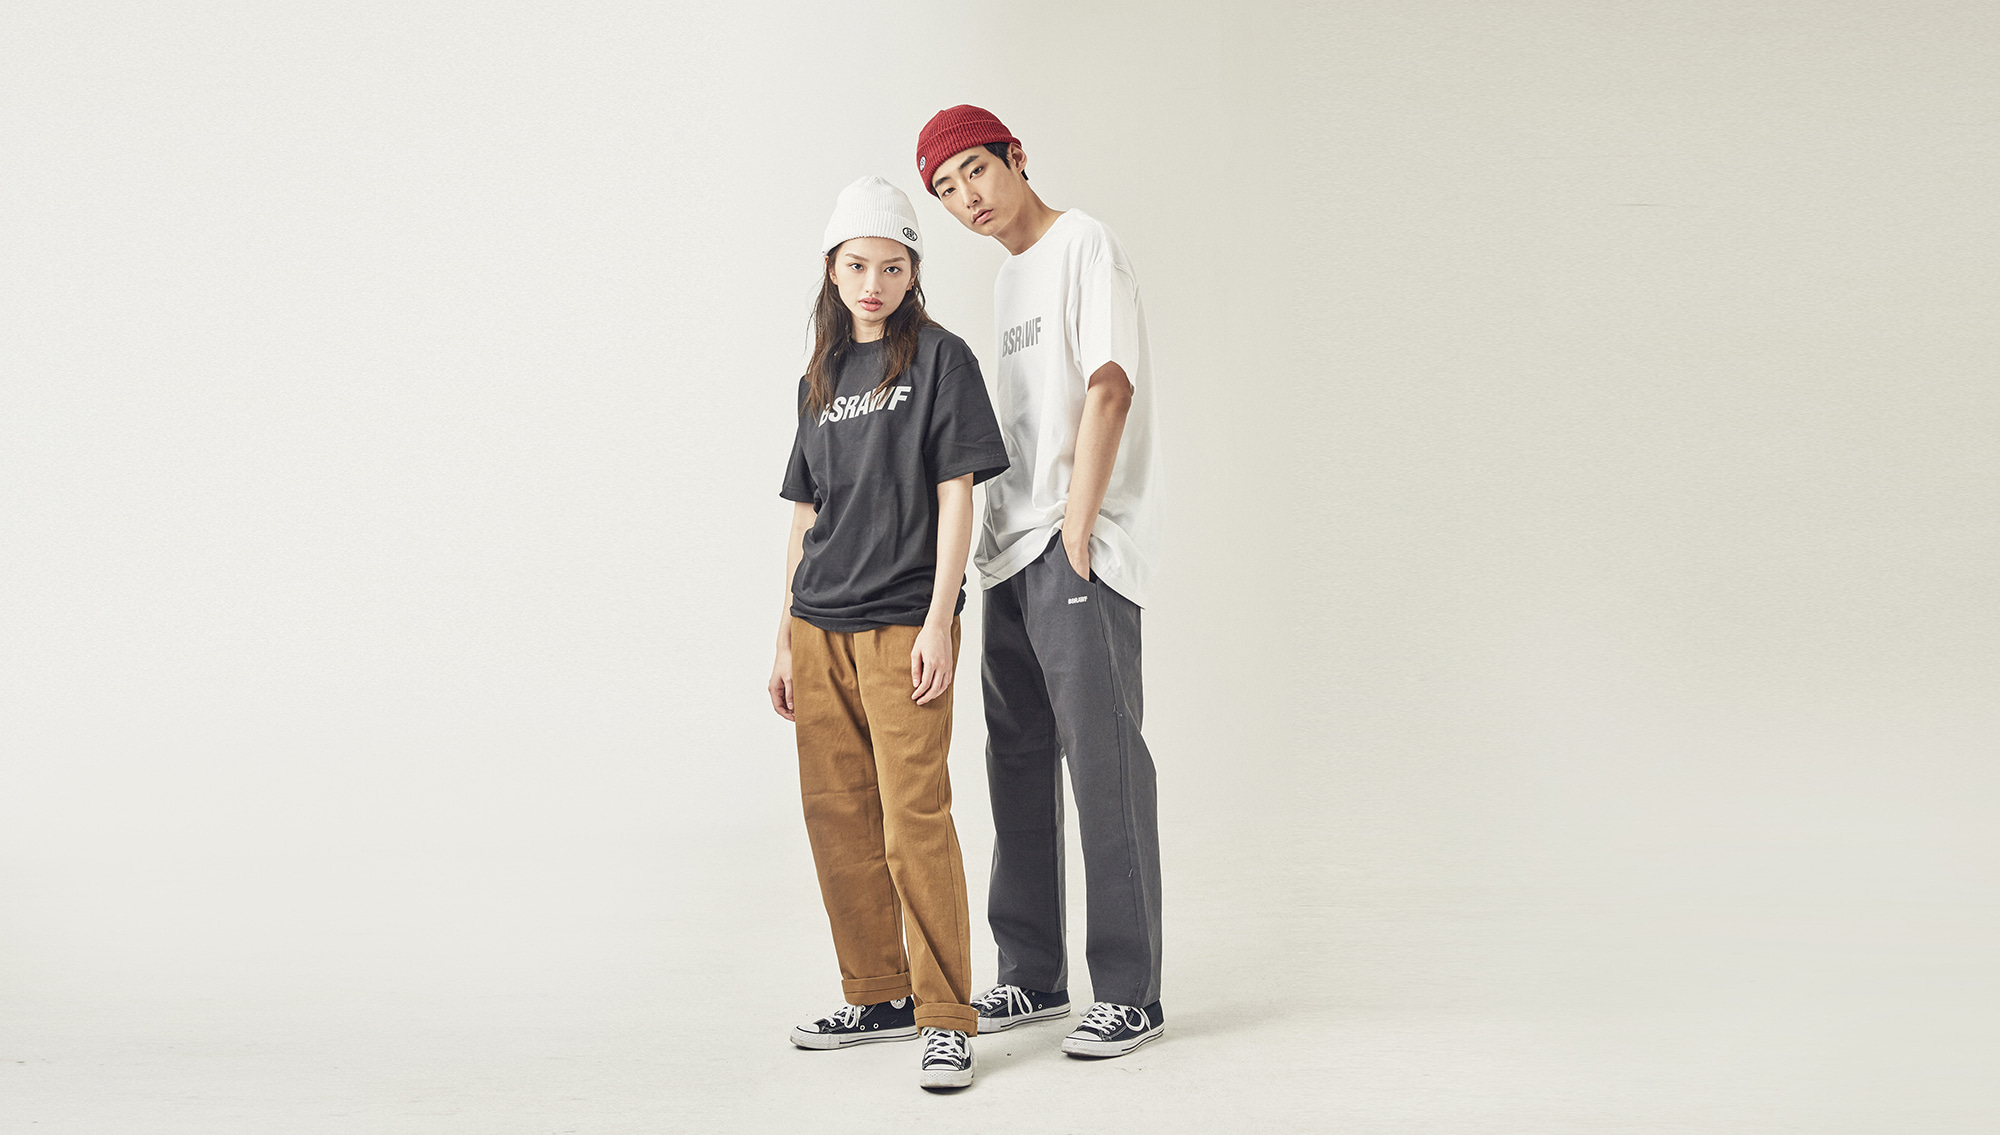 BSRABBIT 18/19 SPRING LOOKBOOK | 進化